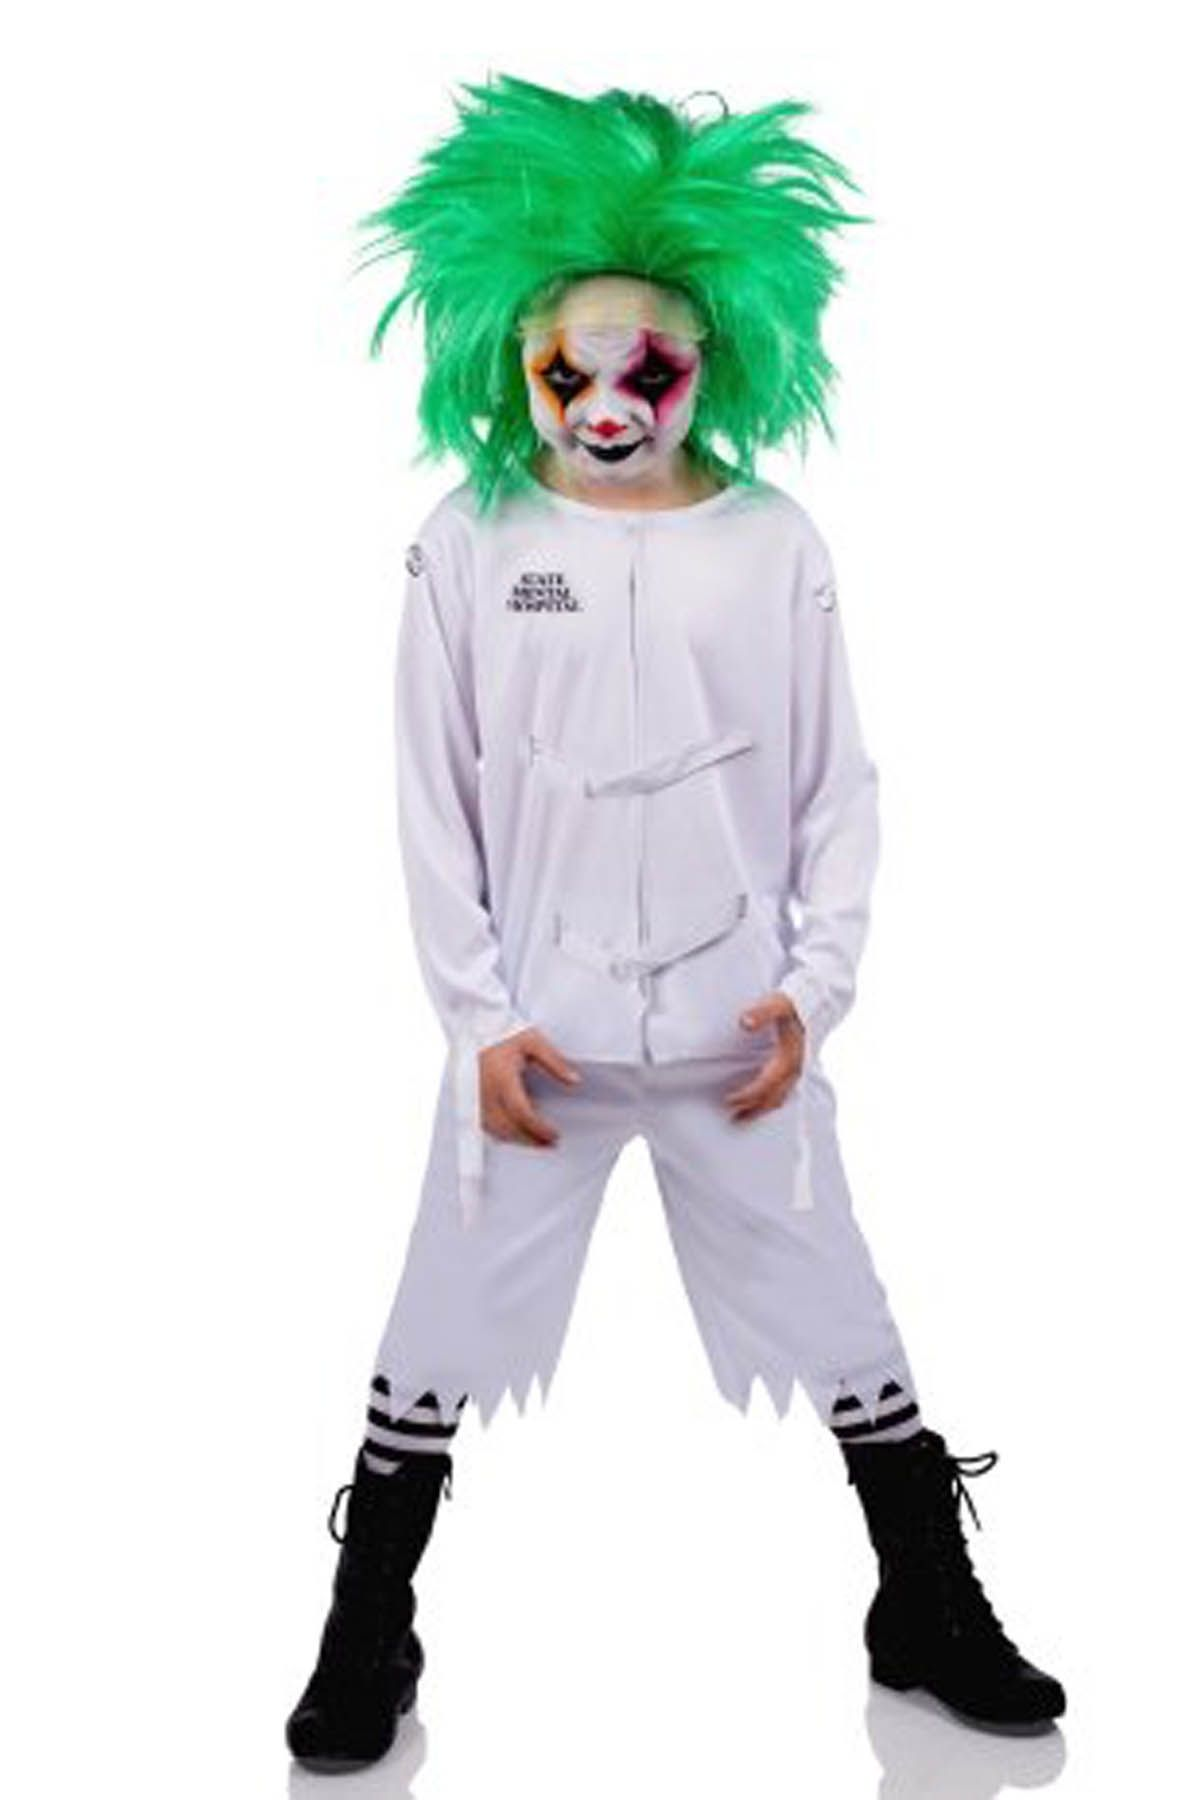 20 most inappropriate halloween costumes for kids